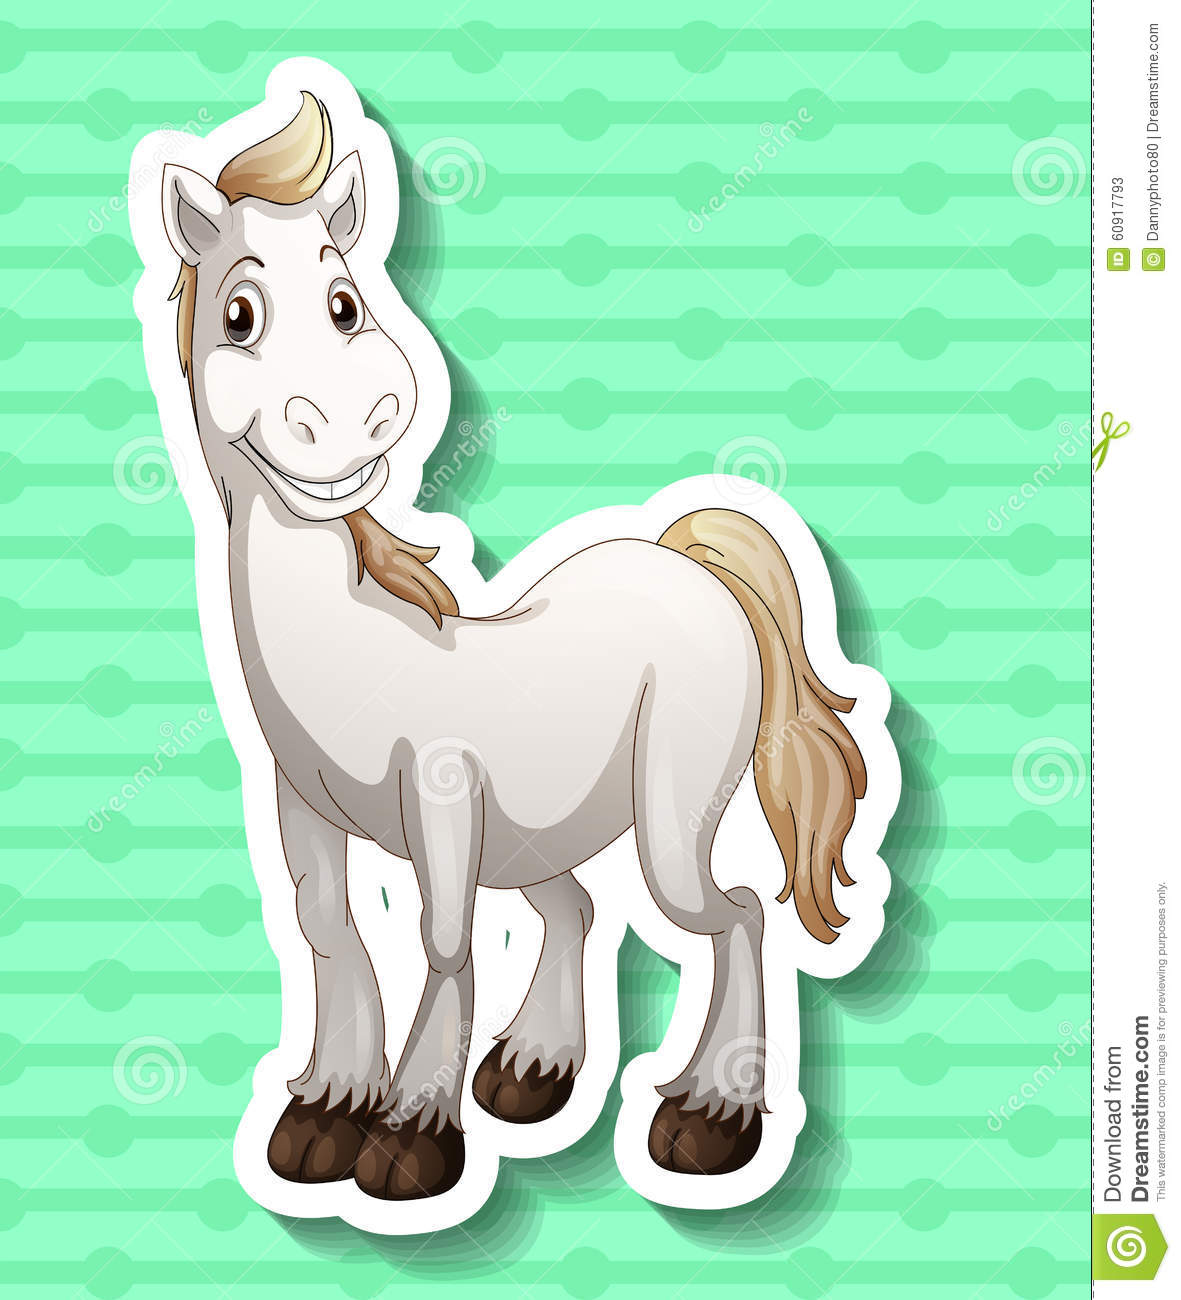 Cute White Horse Smiling Stock Vector Illustration Of Adorable 60917793